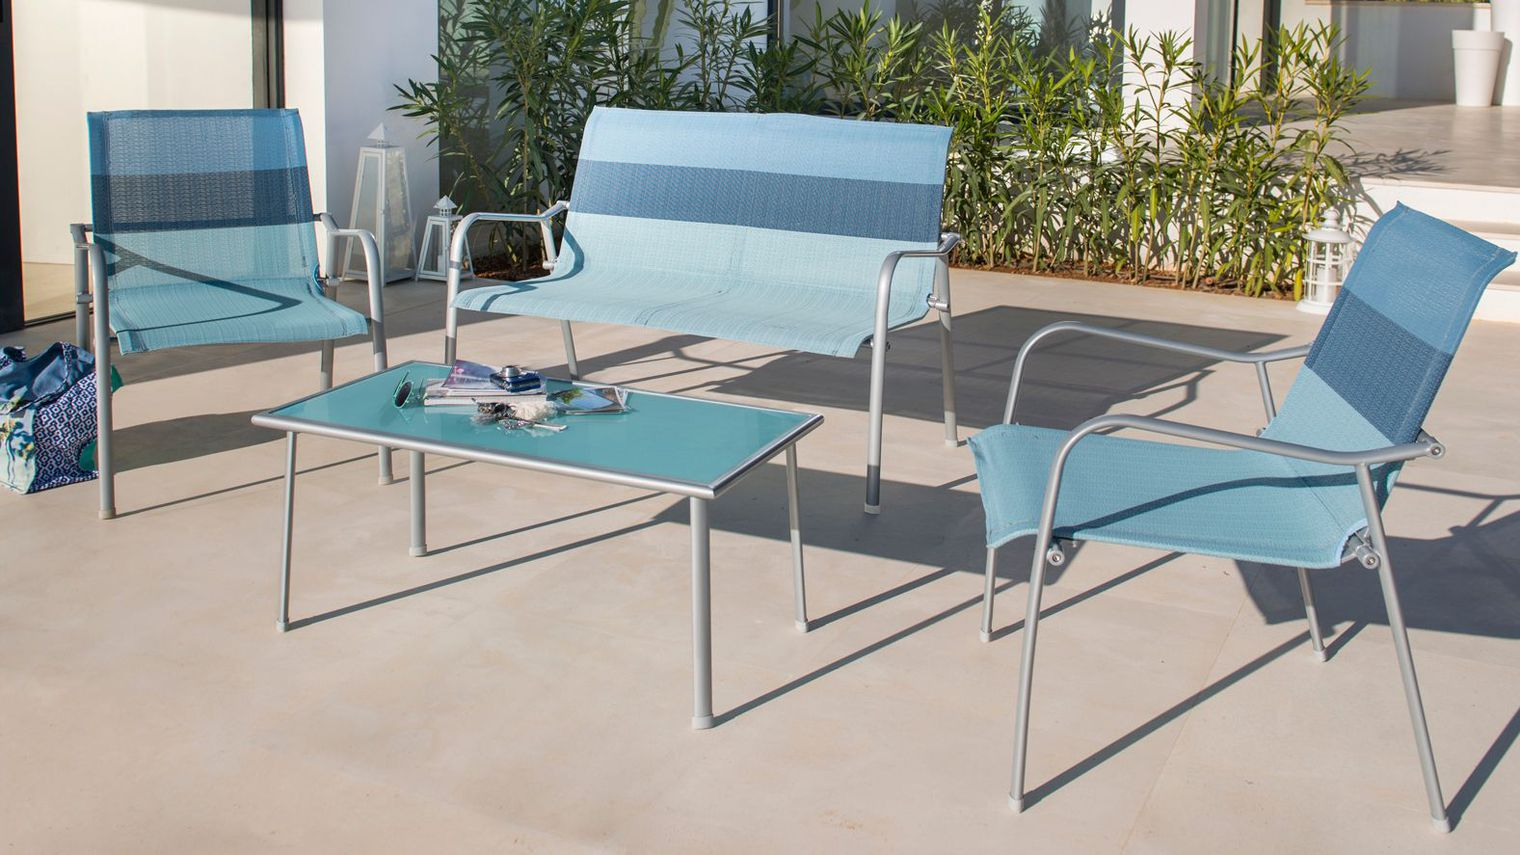 Salon Jardin Textilene. Trendy Salon De Jardin Table Extensible ...